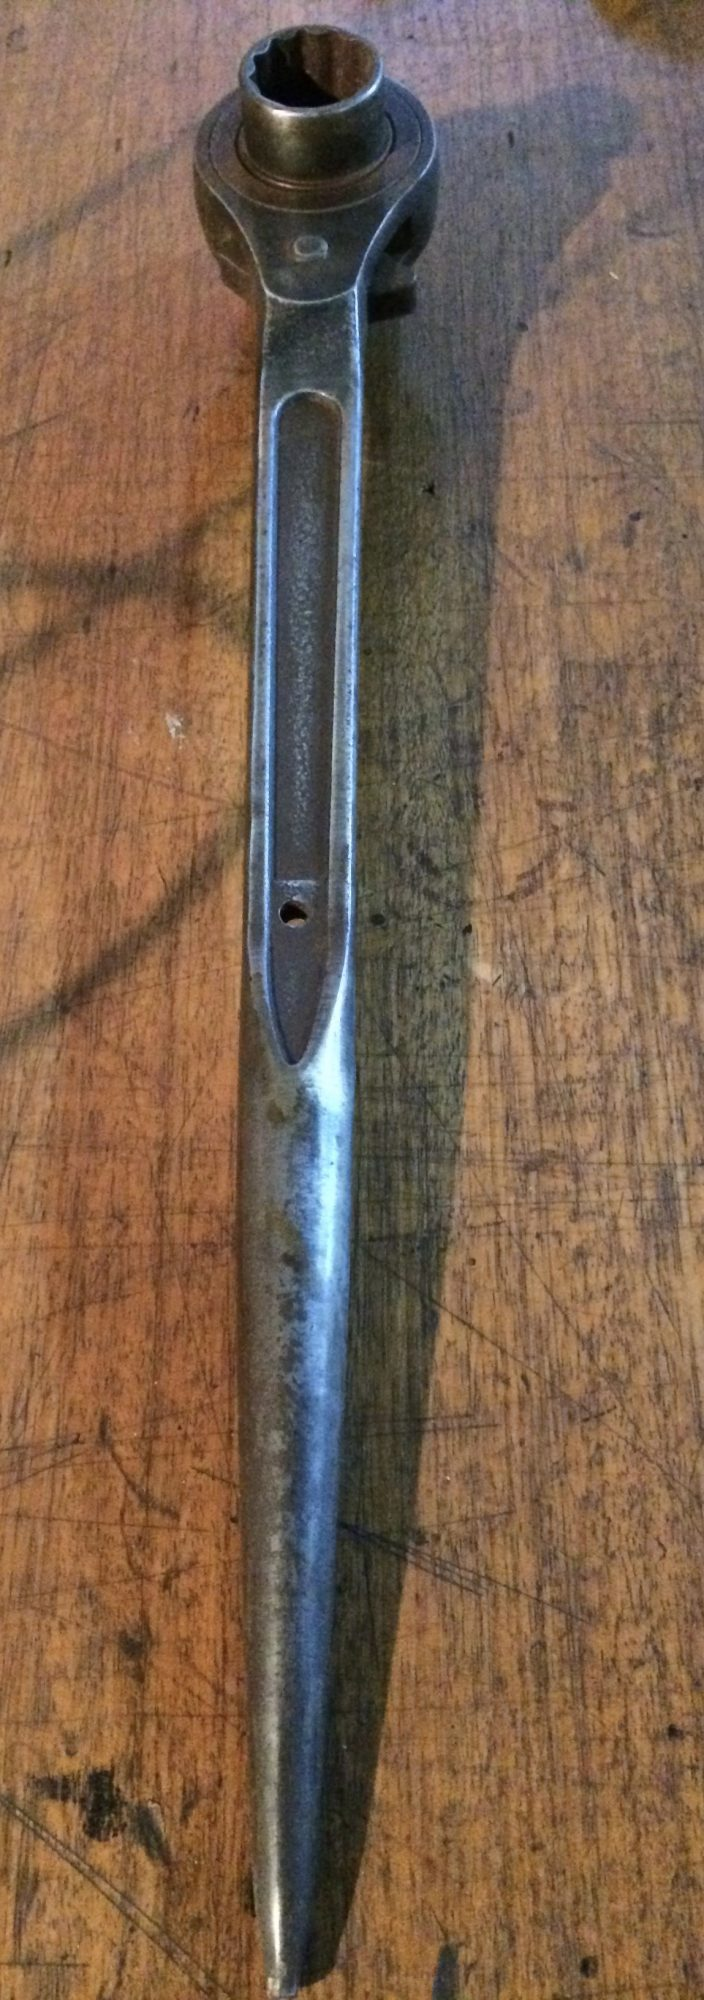 Vintage Riggers Scaffold Ratchet Podger